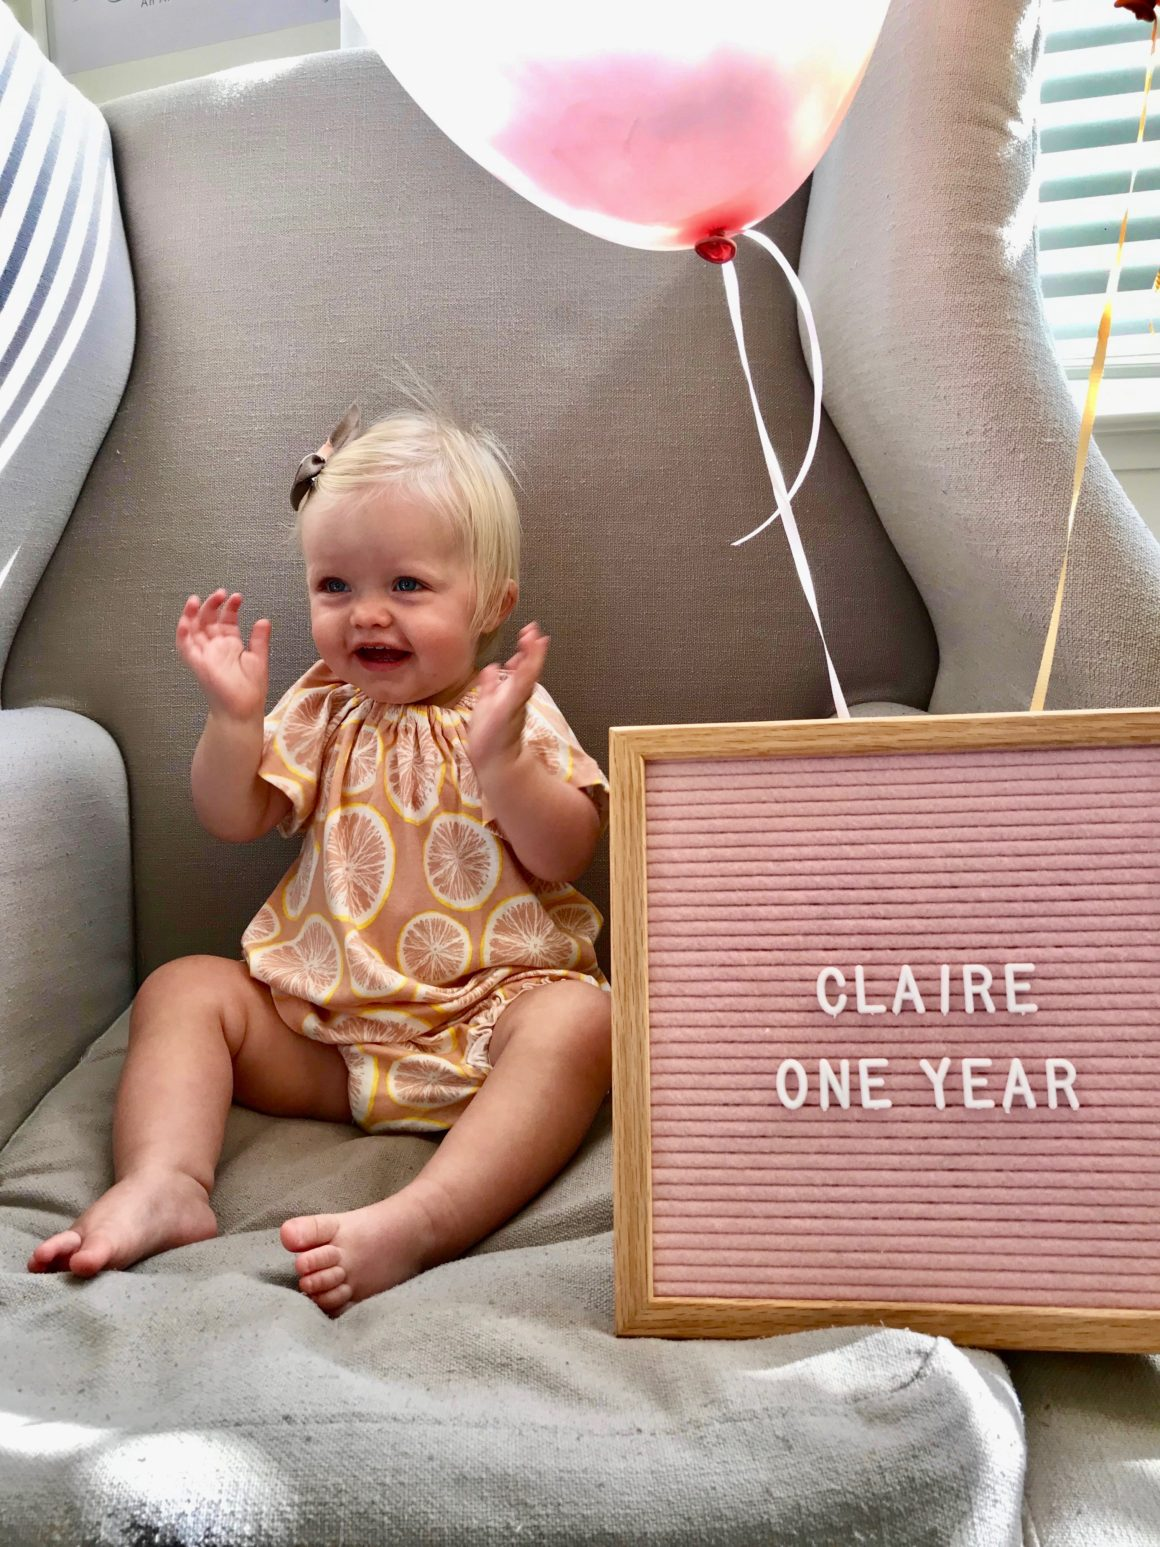 claire one year